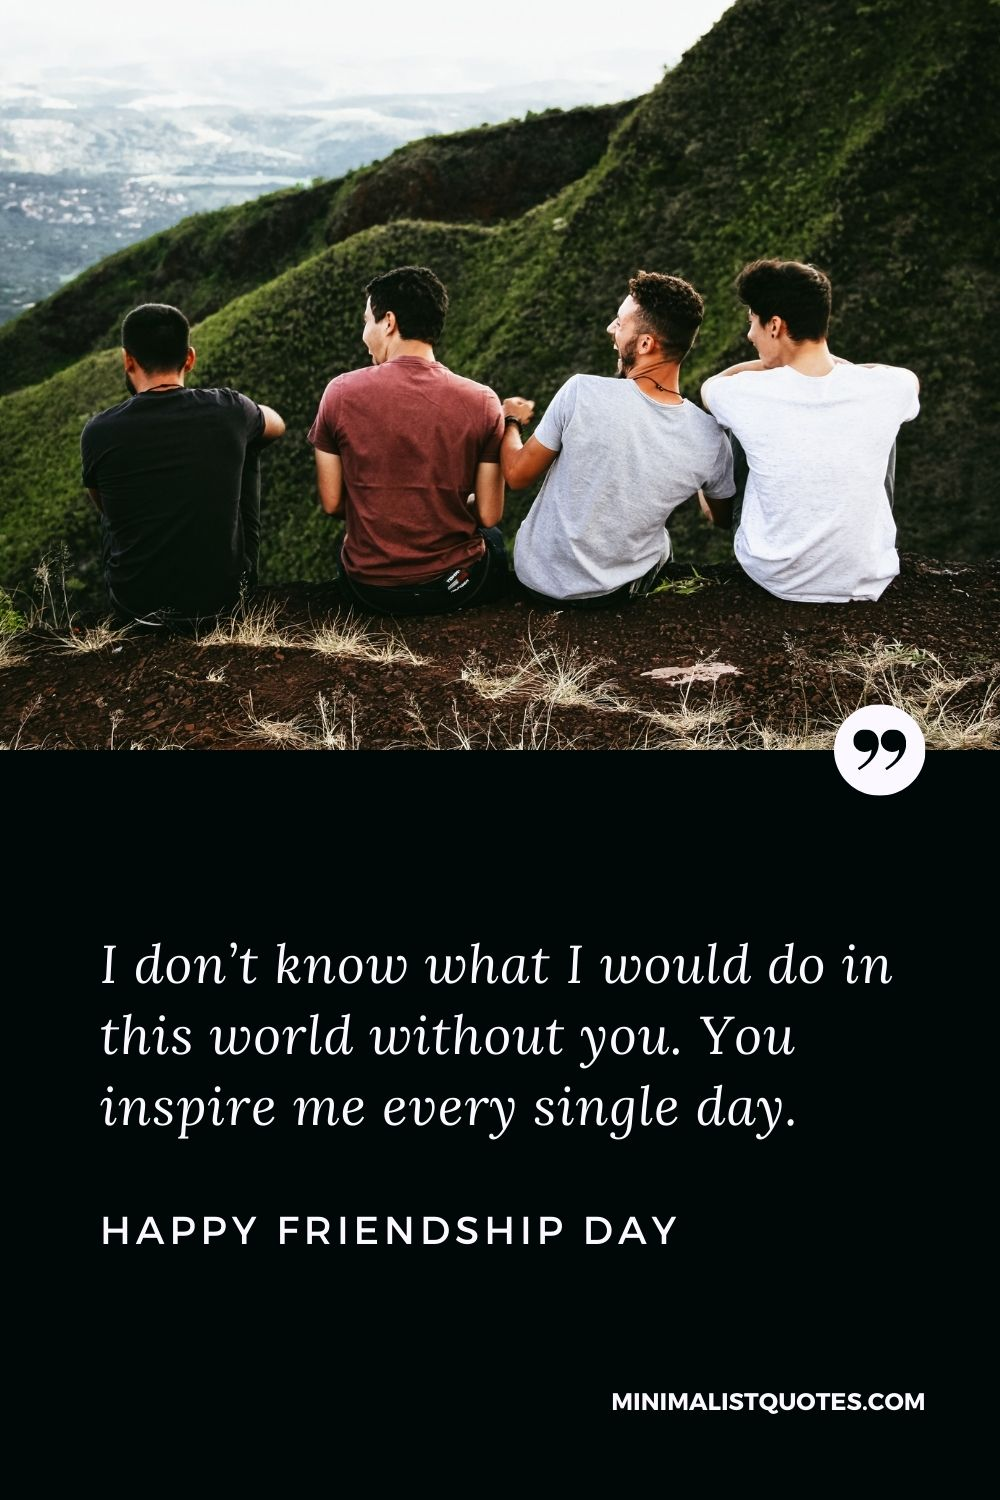 Friendship Day wish, message & quote with HD image: I don't know what I would do in this world without you. You inspire me every single day. Happy Friendship Day!